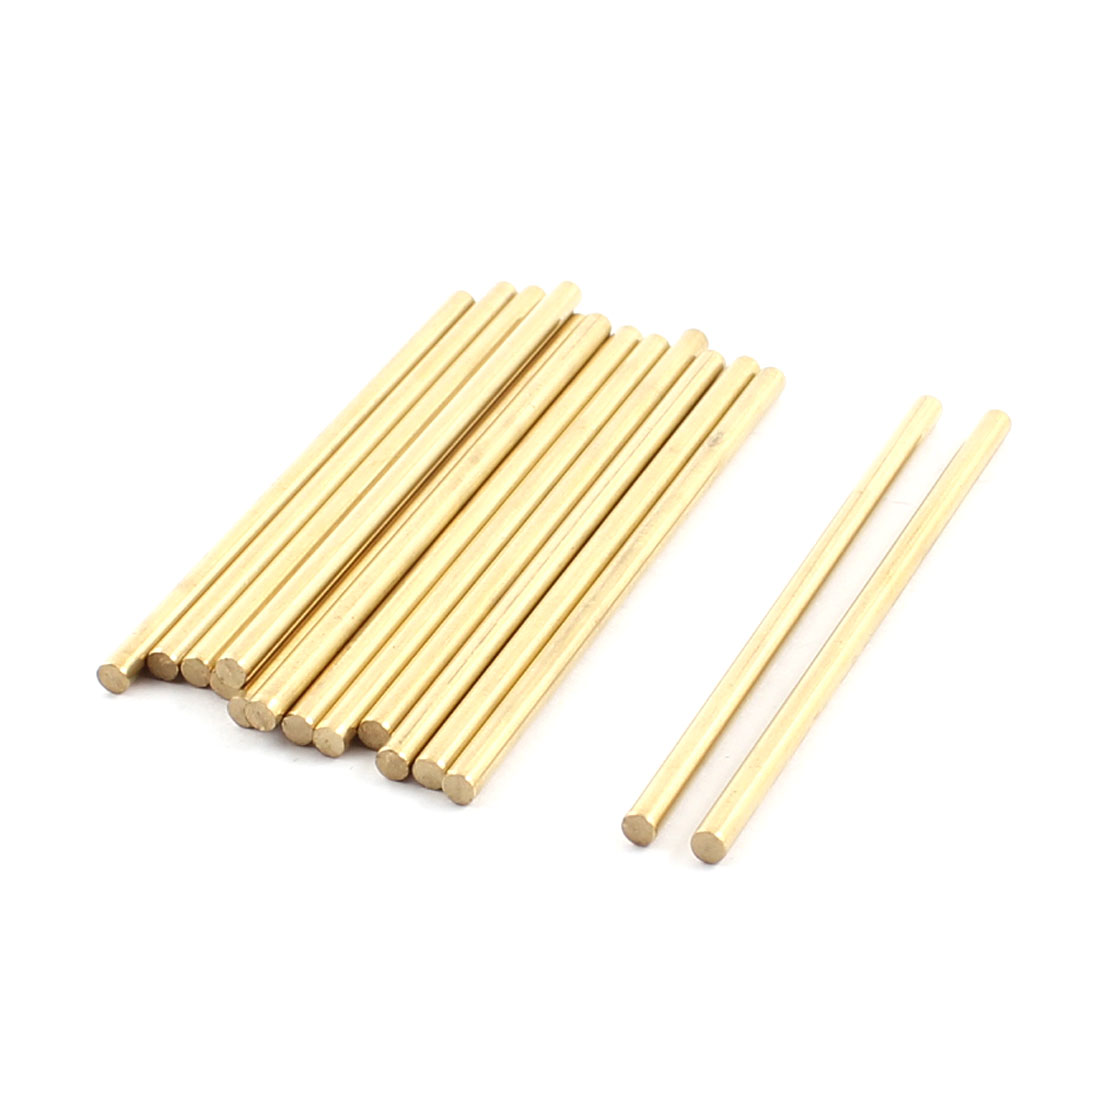 15Pcs 3mm Dia 70mm Length Brass Round Rod Shaft for RC Toy Car